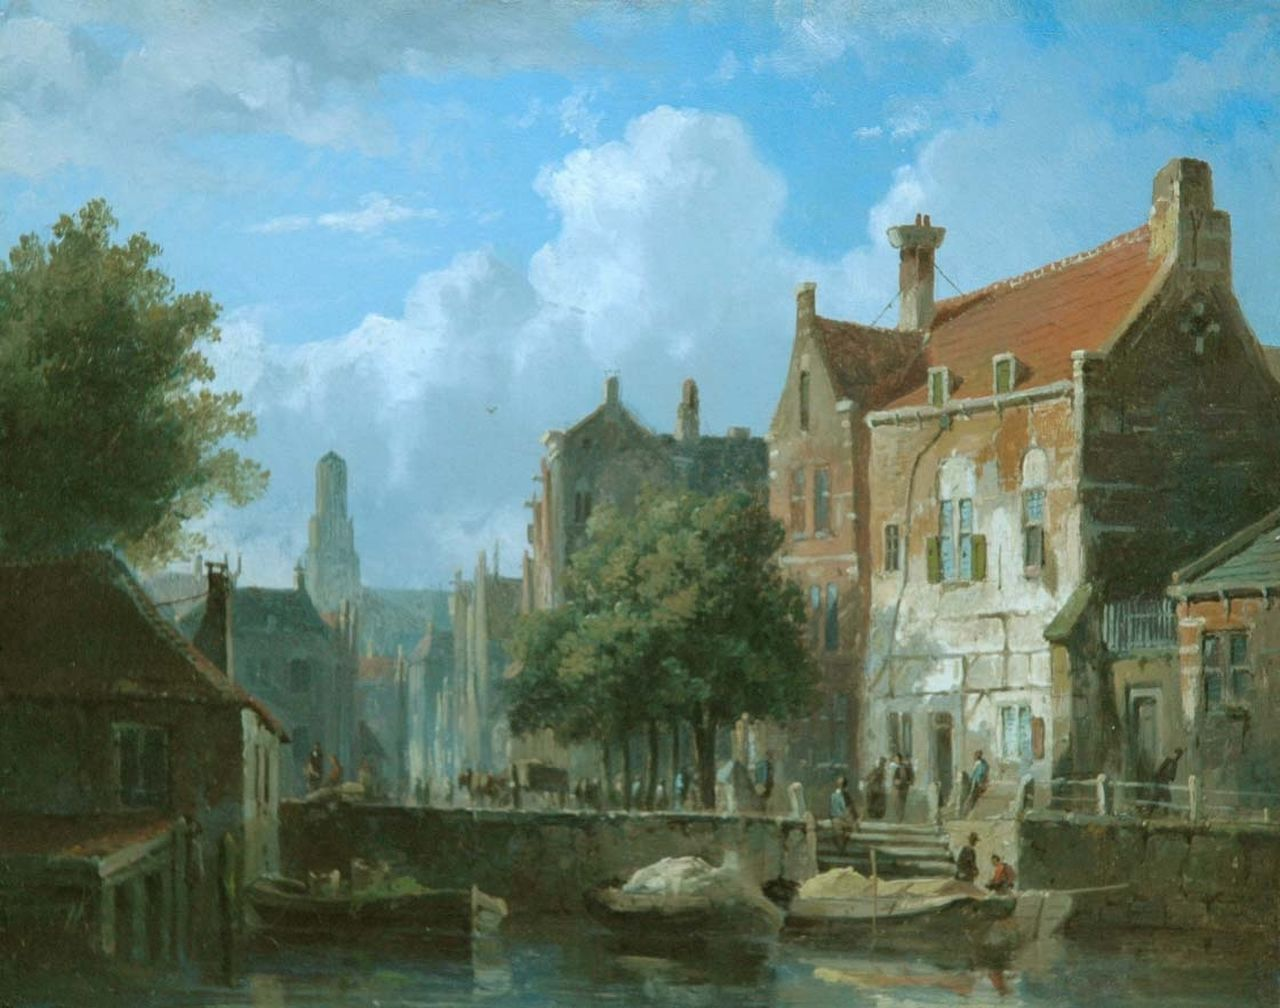 Eversen A.  | Adrianus Eversen, Moored boats in a canal, oil on panel 16.6 x 21.0 cm